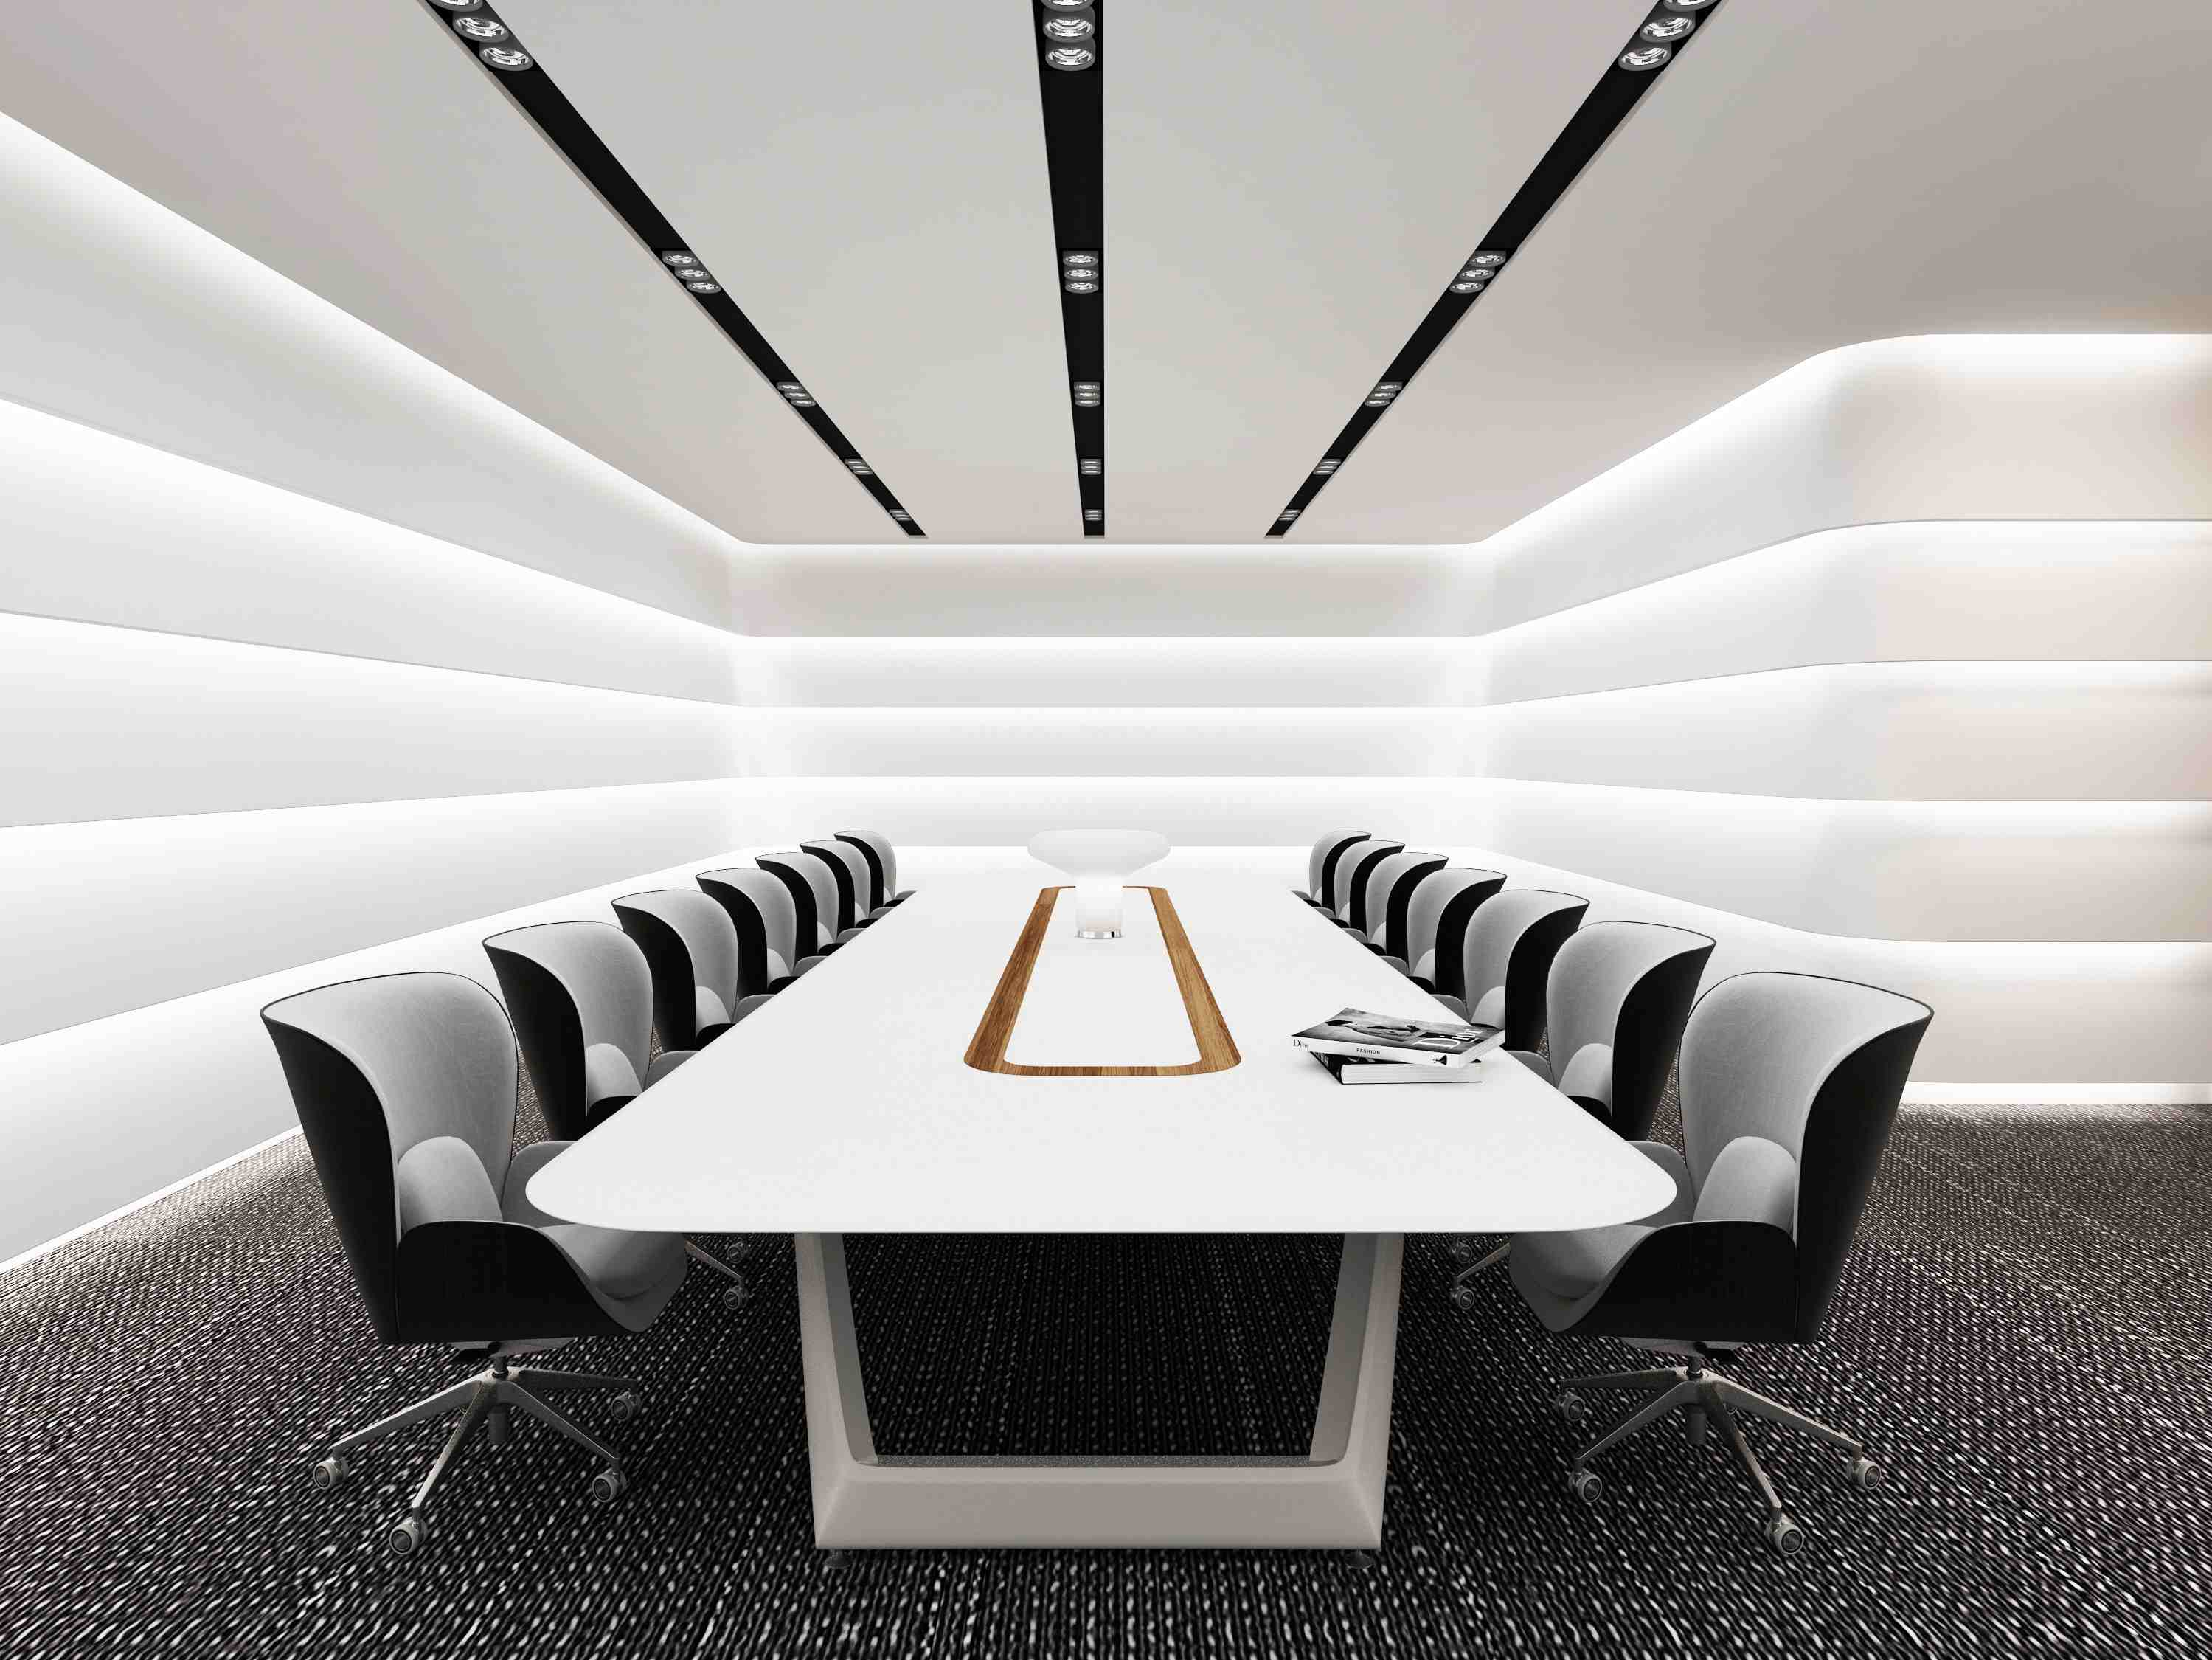 High-end Offical Conference Table